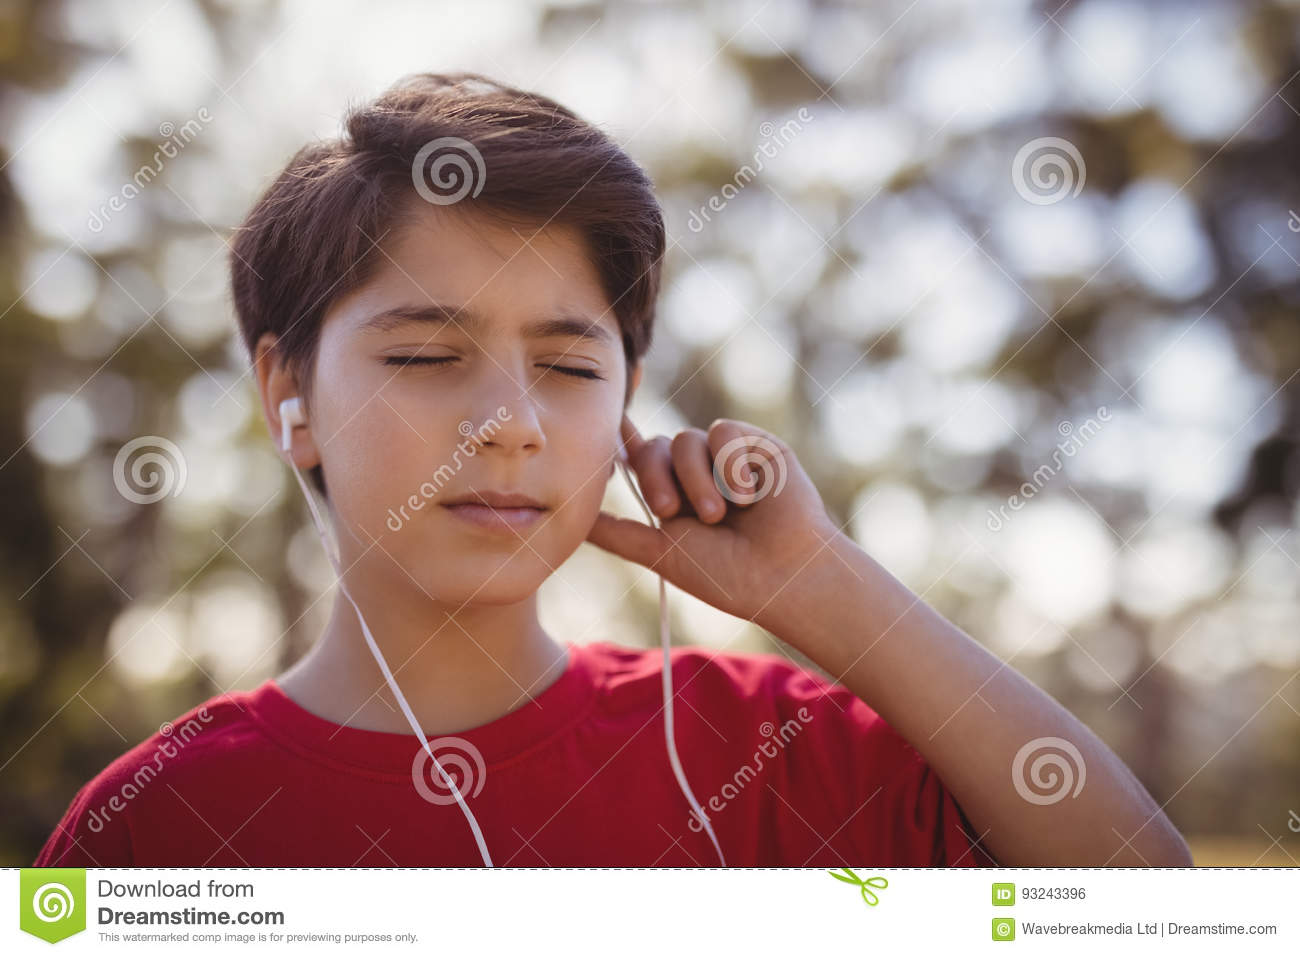 Close-up of boy listening music on headphones during obstacle course